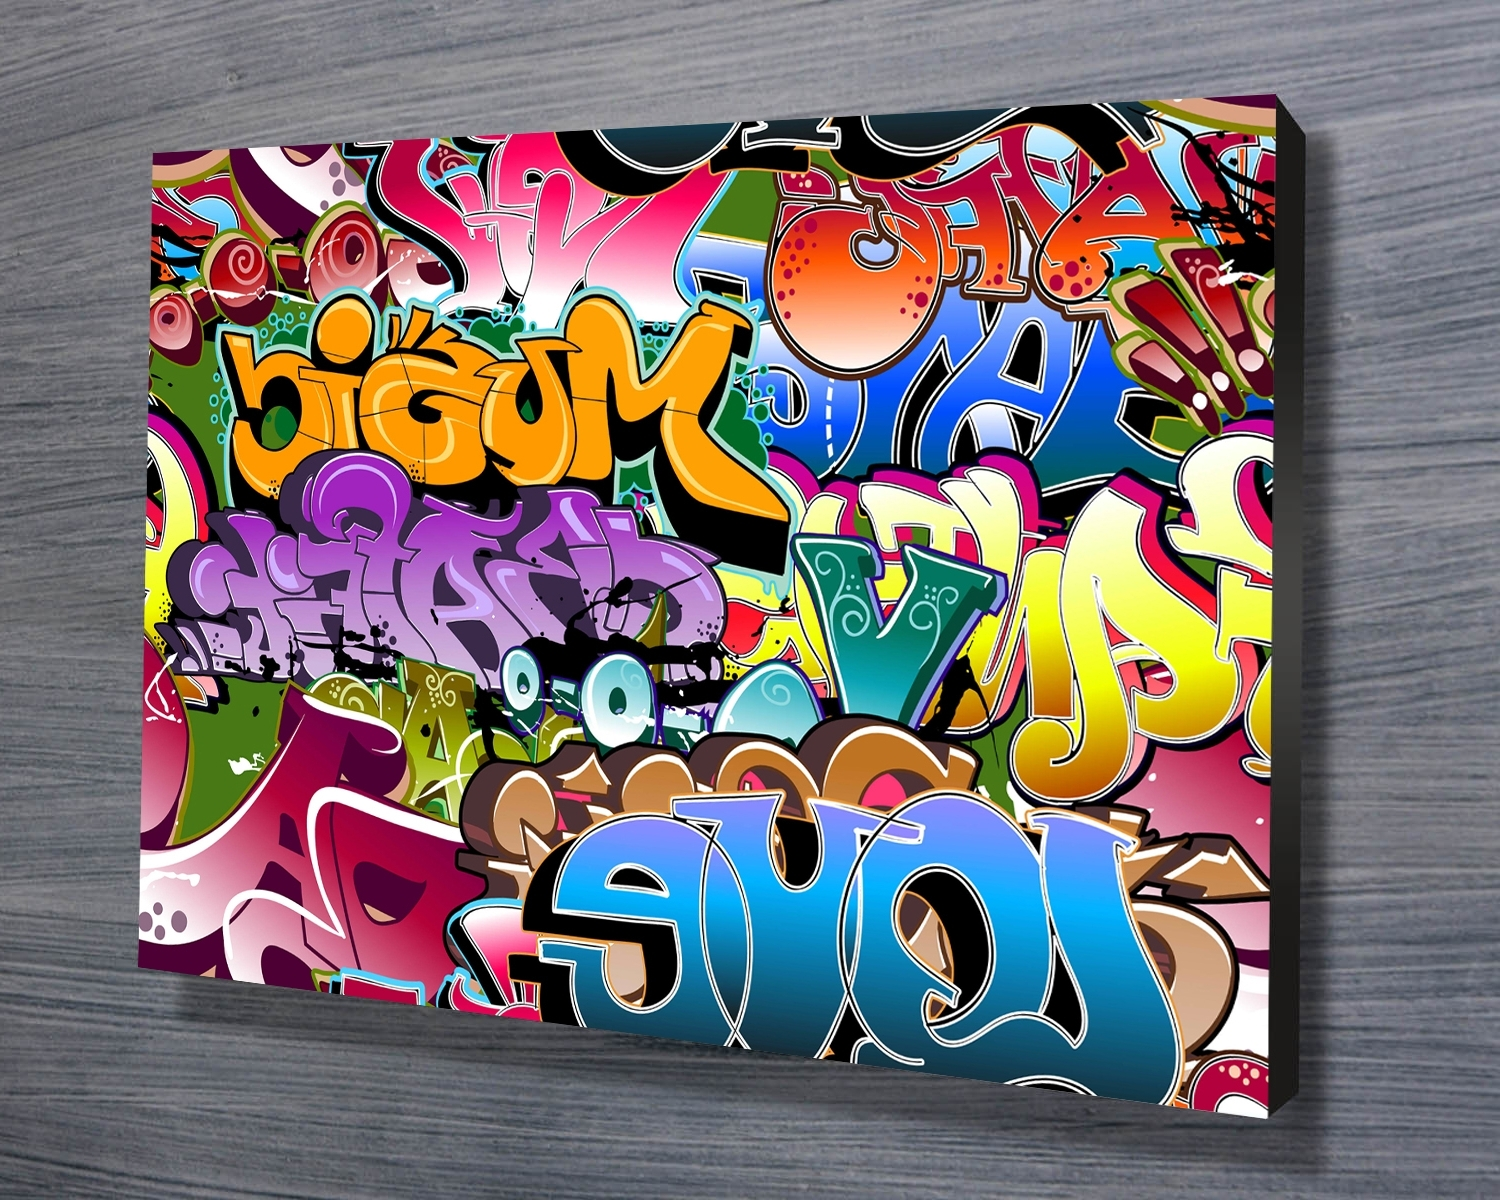 Personalized Graffiti Wall Art Throughout Trendy Personalized Graffiti Wall Murals • Wall Murals Ideas (View 4 of 15)